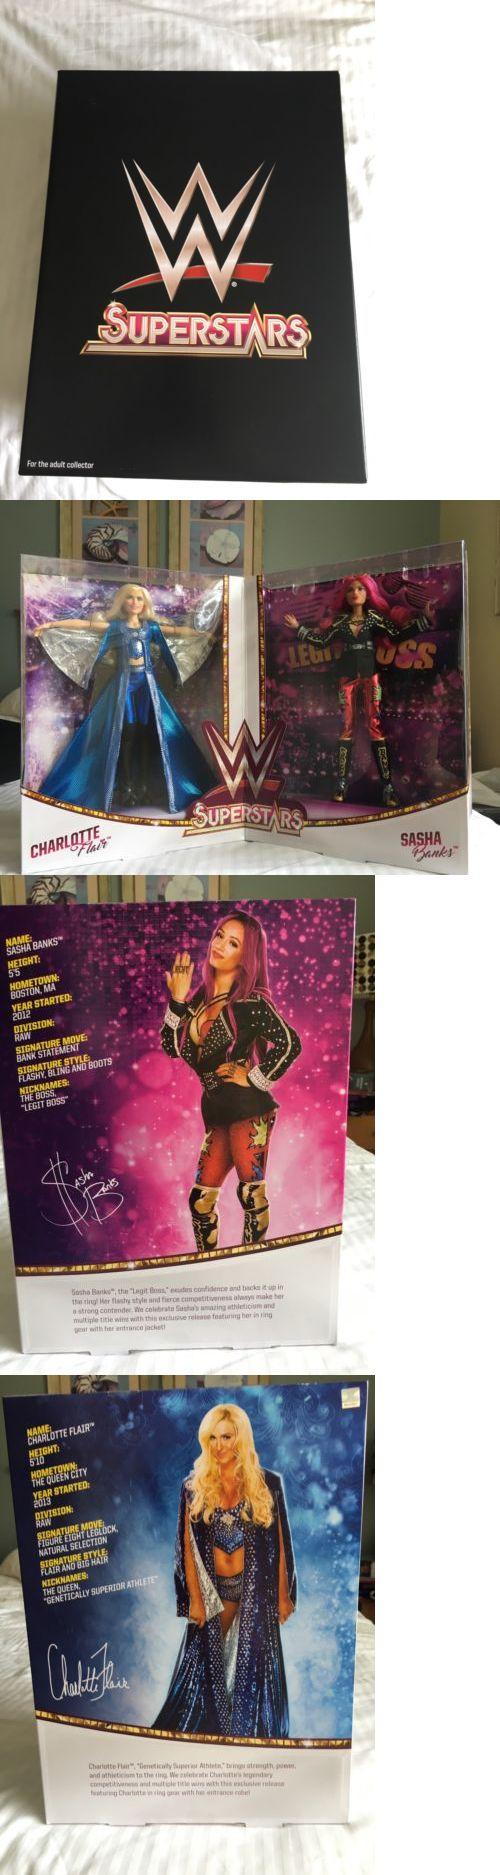 Sports 754: 2017 Sdcc Mattel Exclusive Wwe Superstars Sasha Banks And Charlotte Flair Set -> BUY IT NOW ONLY: $125 on eBay!